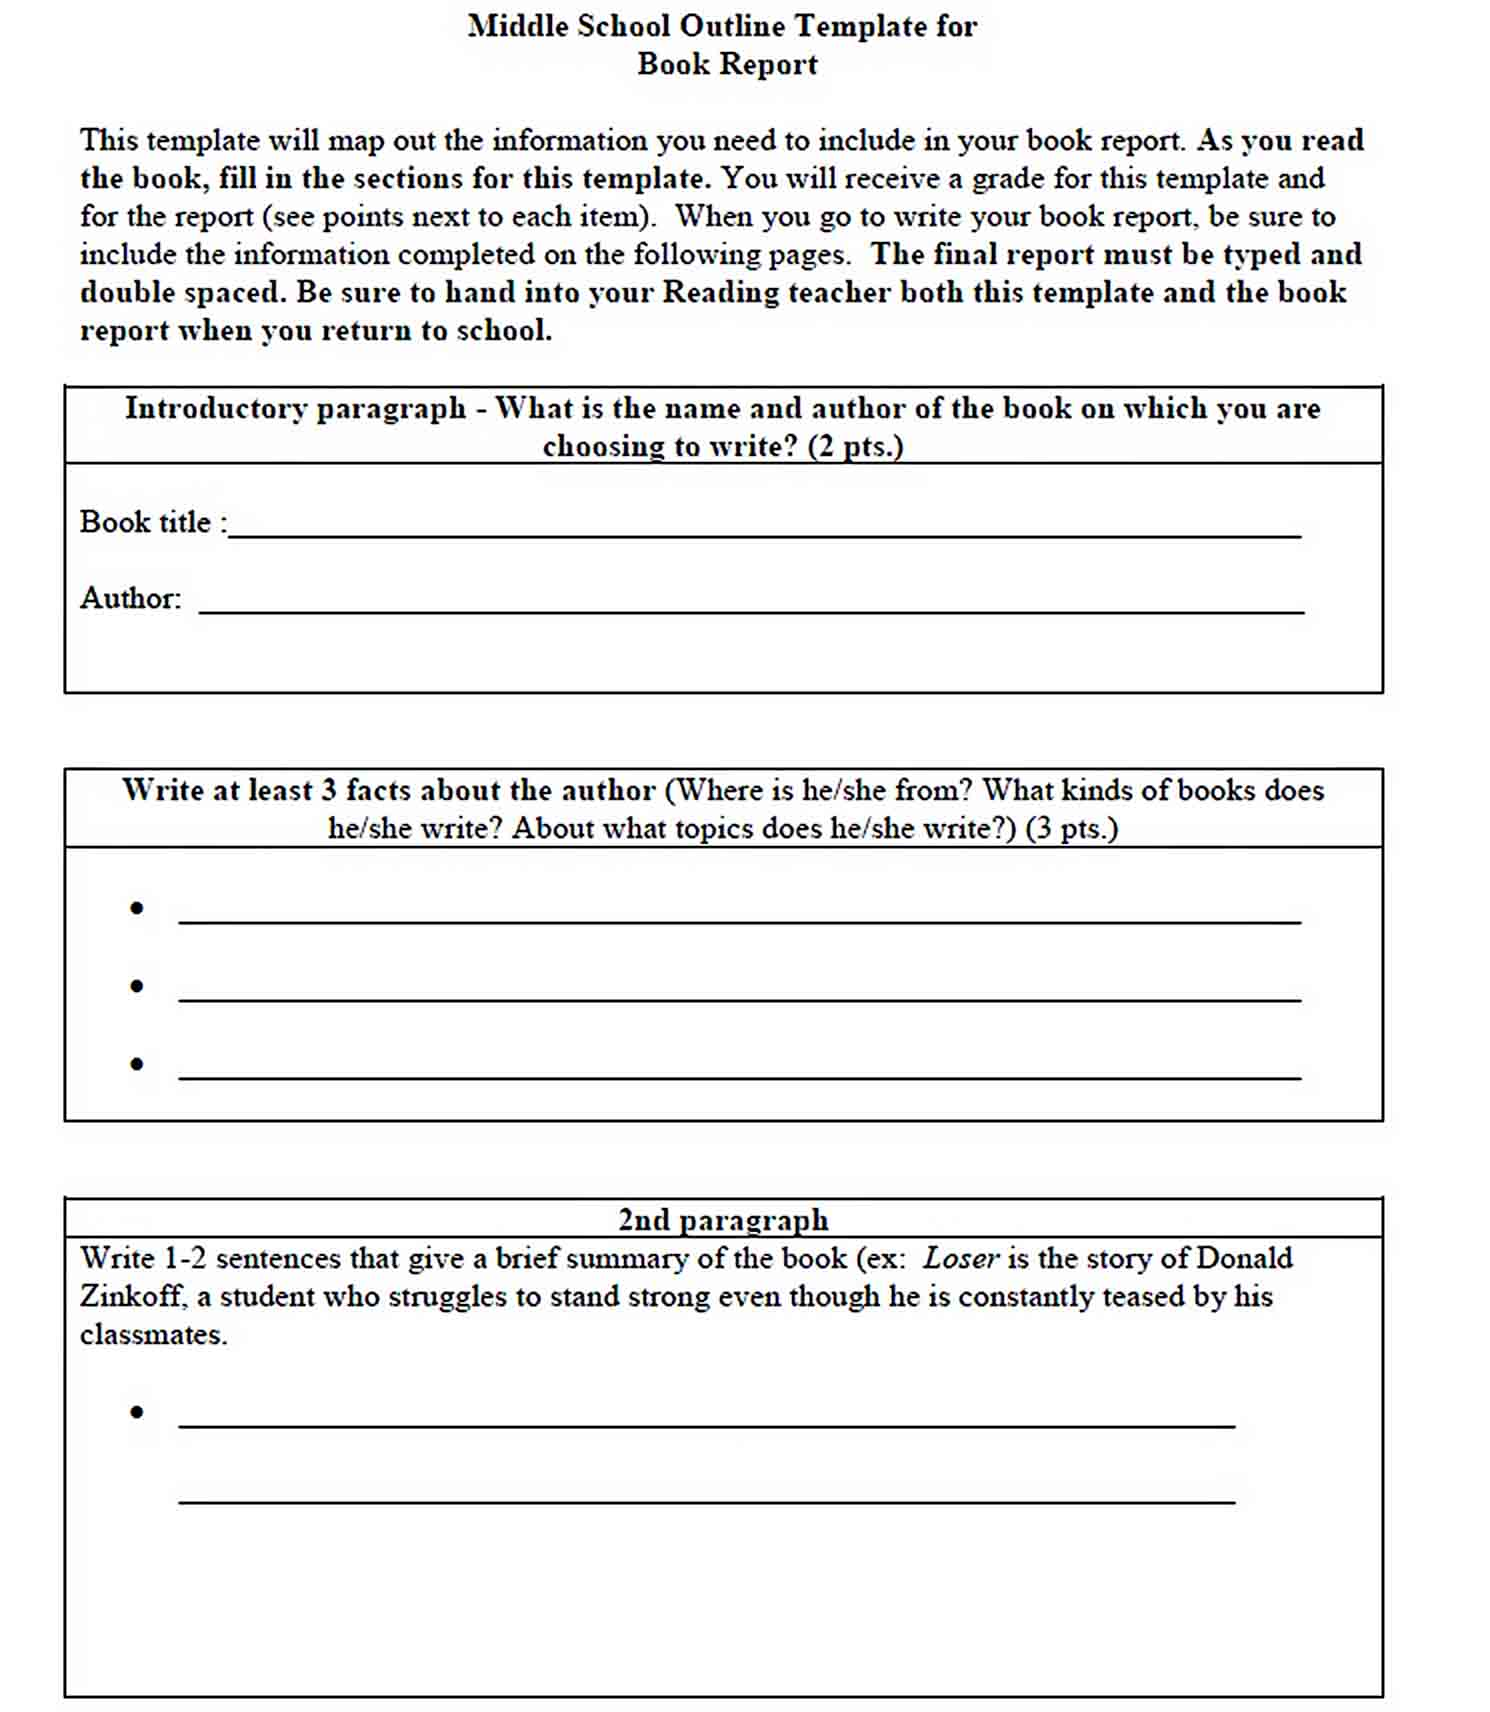 Middle School Book Report Template